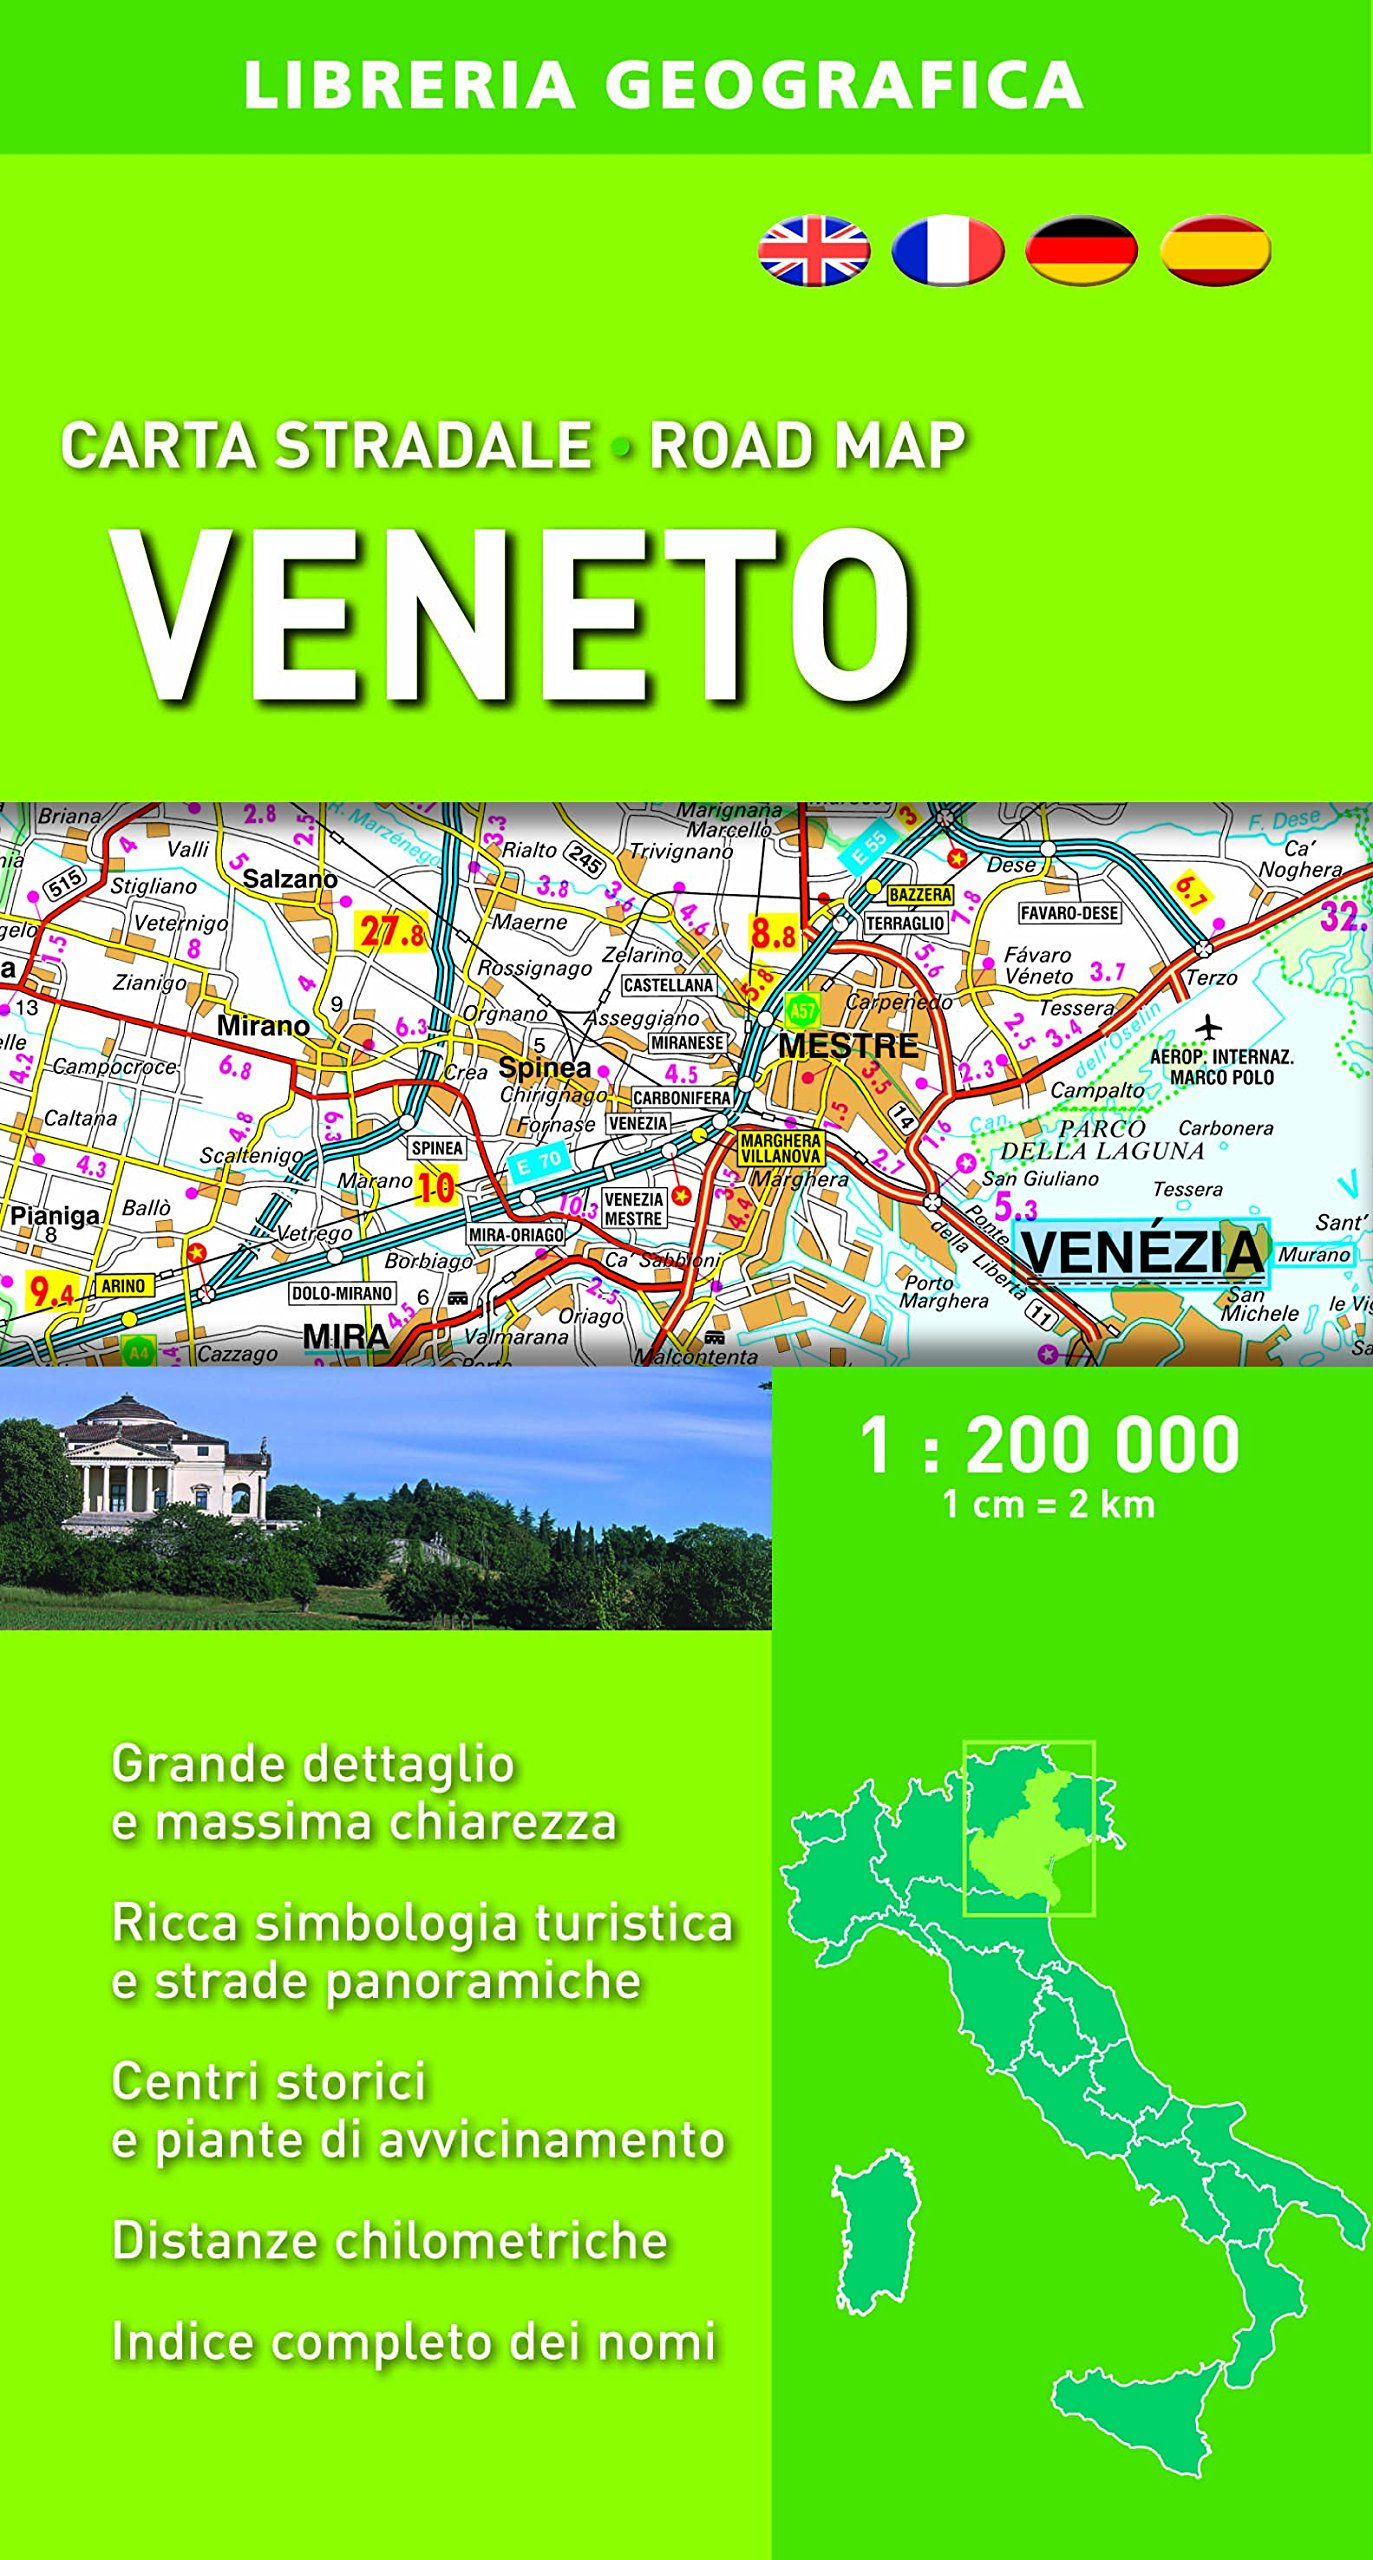 Cartina Stradale Veneto Trentino.Amazon It Carta Stradale Veneto 1 200 000 Aa Vv Libri